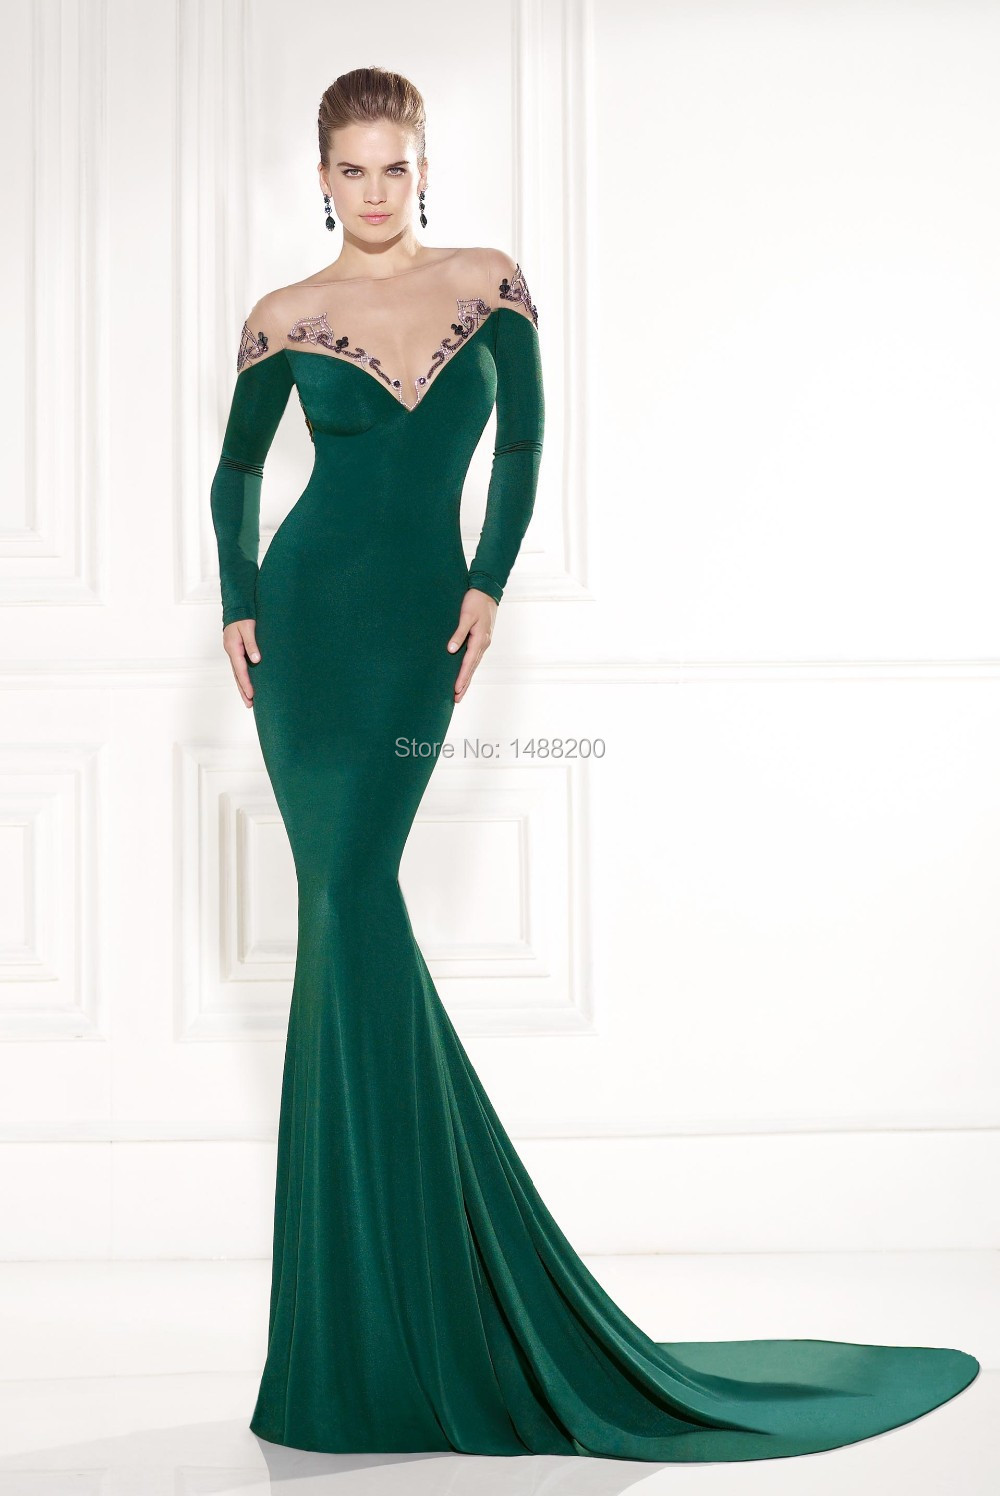 Compare Prices on Emerald Green Dress- Online Shopping Buy Low ... Sexy See  Through Emerald Green Evening Dress Long Sleeve Mermaid Beaded ... 28b5a79473e6